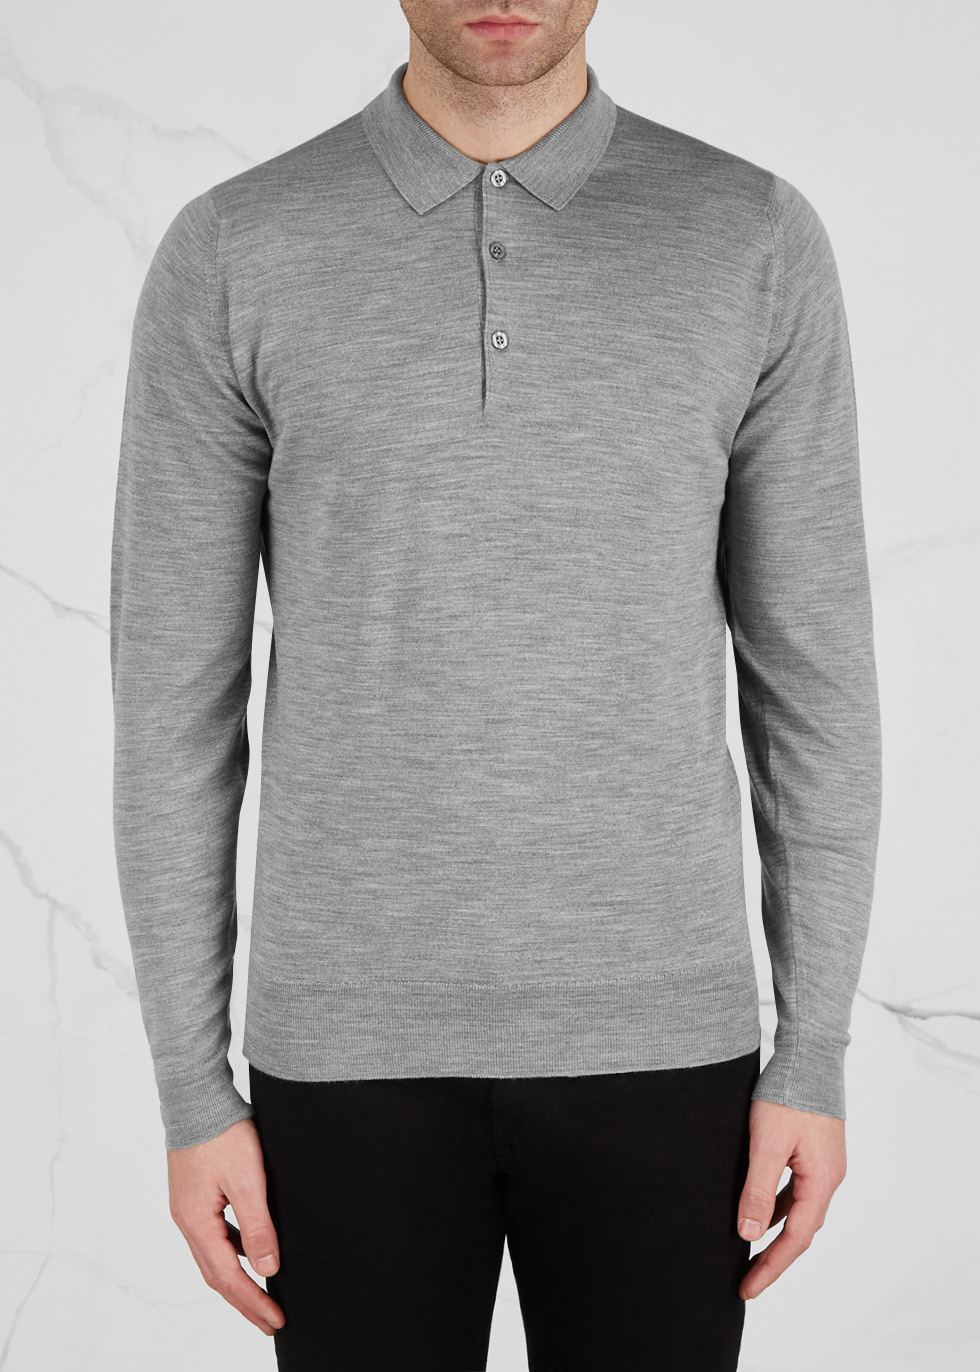 Belper grey fine-knit wool polo shirt - John Smedley